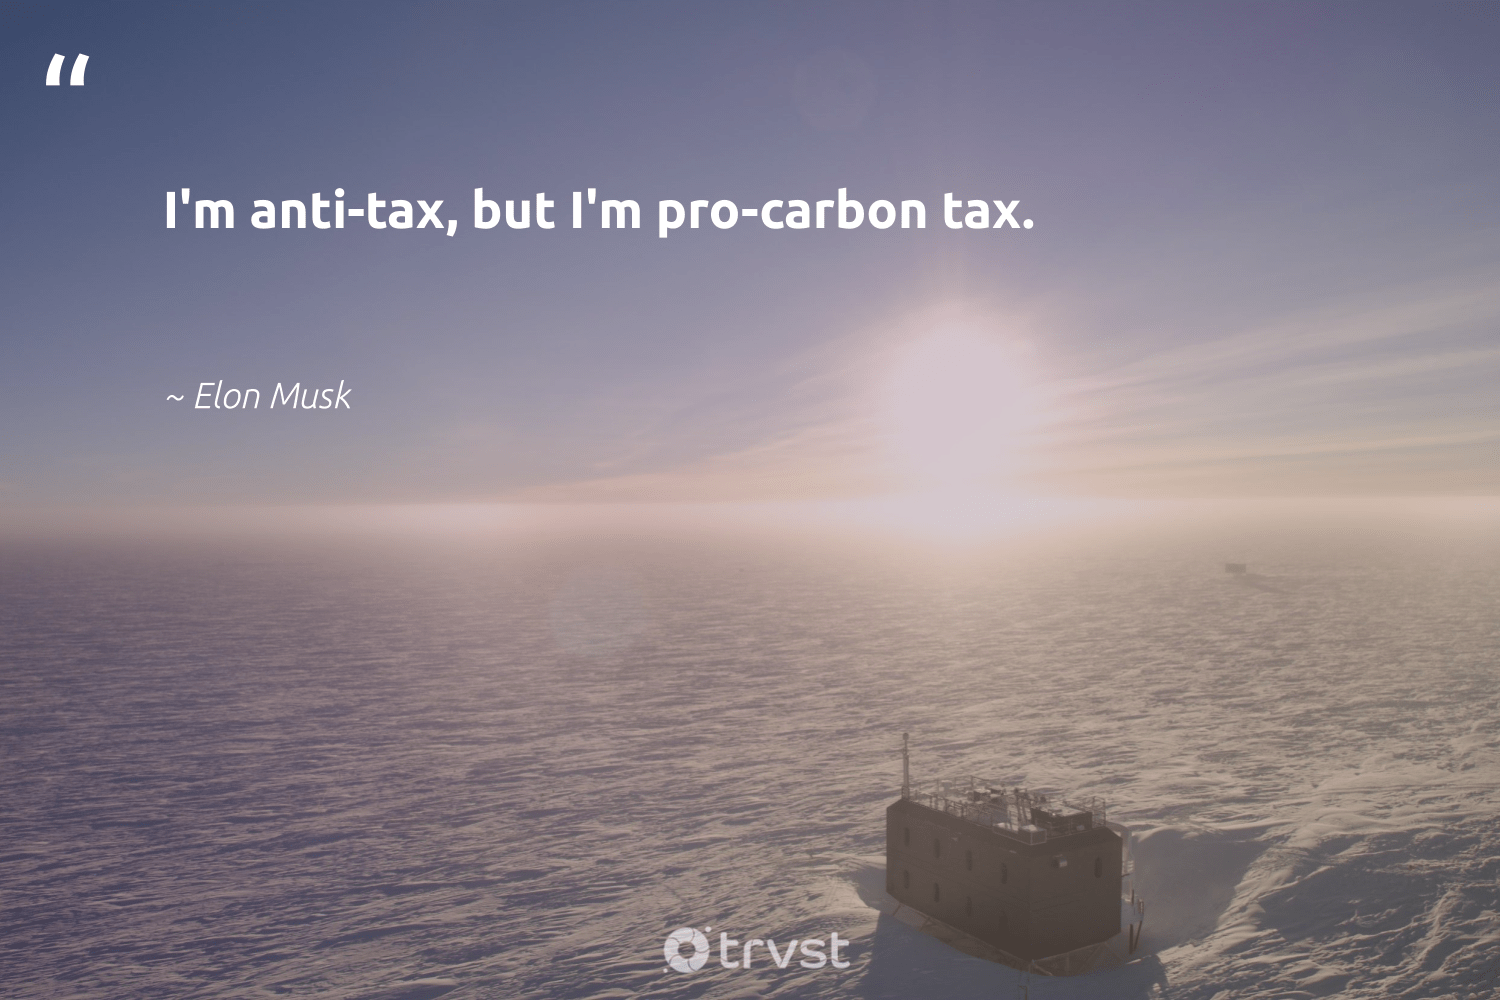 """""""I'm anti-tax, but I'm pro-carbon tax.""""  - Elon Musk #trvst #quotes #carbon #globalwarming #takeaction #sustainablefutures #planetearthfirst #climatechangeisreal #dotherightthing #actonclimate #thinkgreen #ecoconscious"""